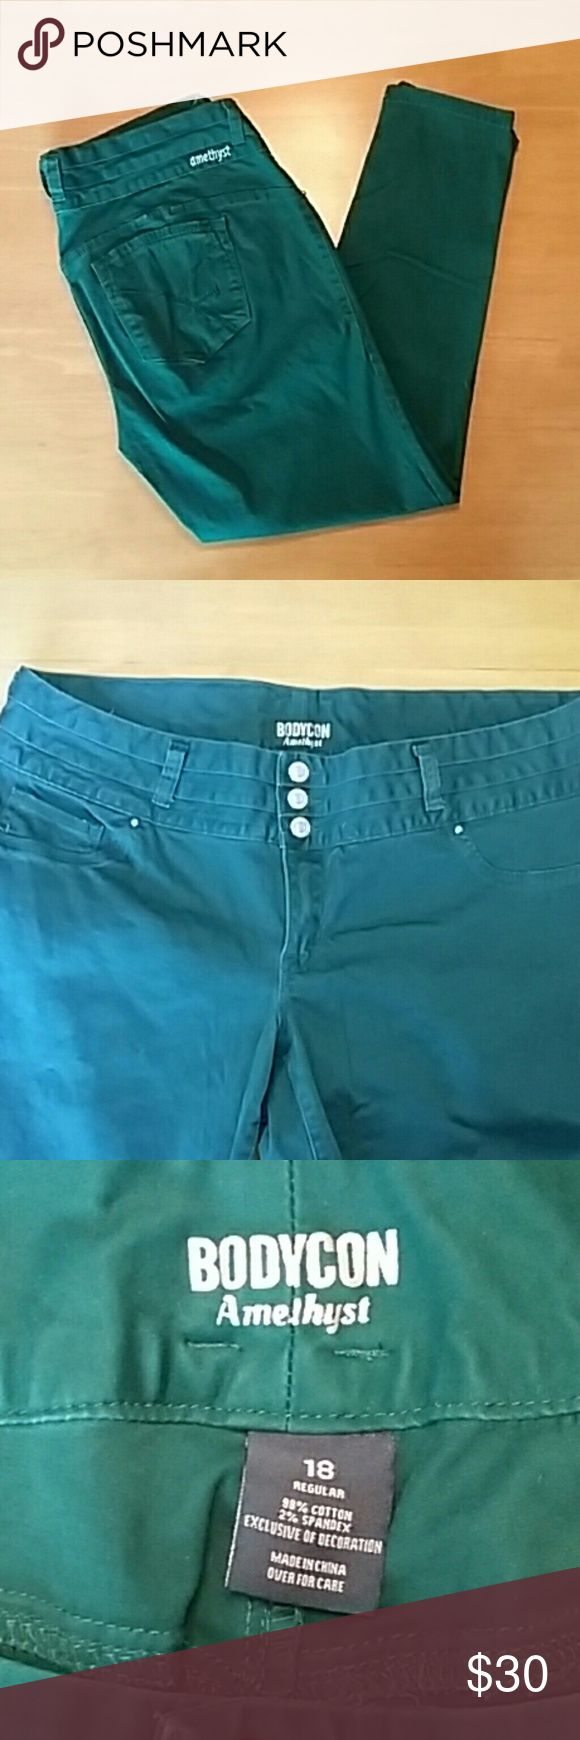 "Amethyst Teal Skinny Jeans Teal Bodycon skinny jeans, super soft sueded finish, triple-button wide waistband. Only worn twice but discovered a small dark spot on the front of the right leg (see pic #4). It is not noticeable unless you are looking for it, but wanted to be completely honest with my listing. Measurements: 30"" inseam, 10"" front rise, 38"" waist. Amethyst Jeans Jeans Skinny"